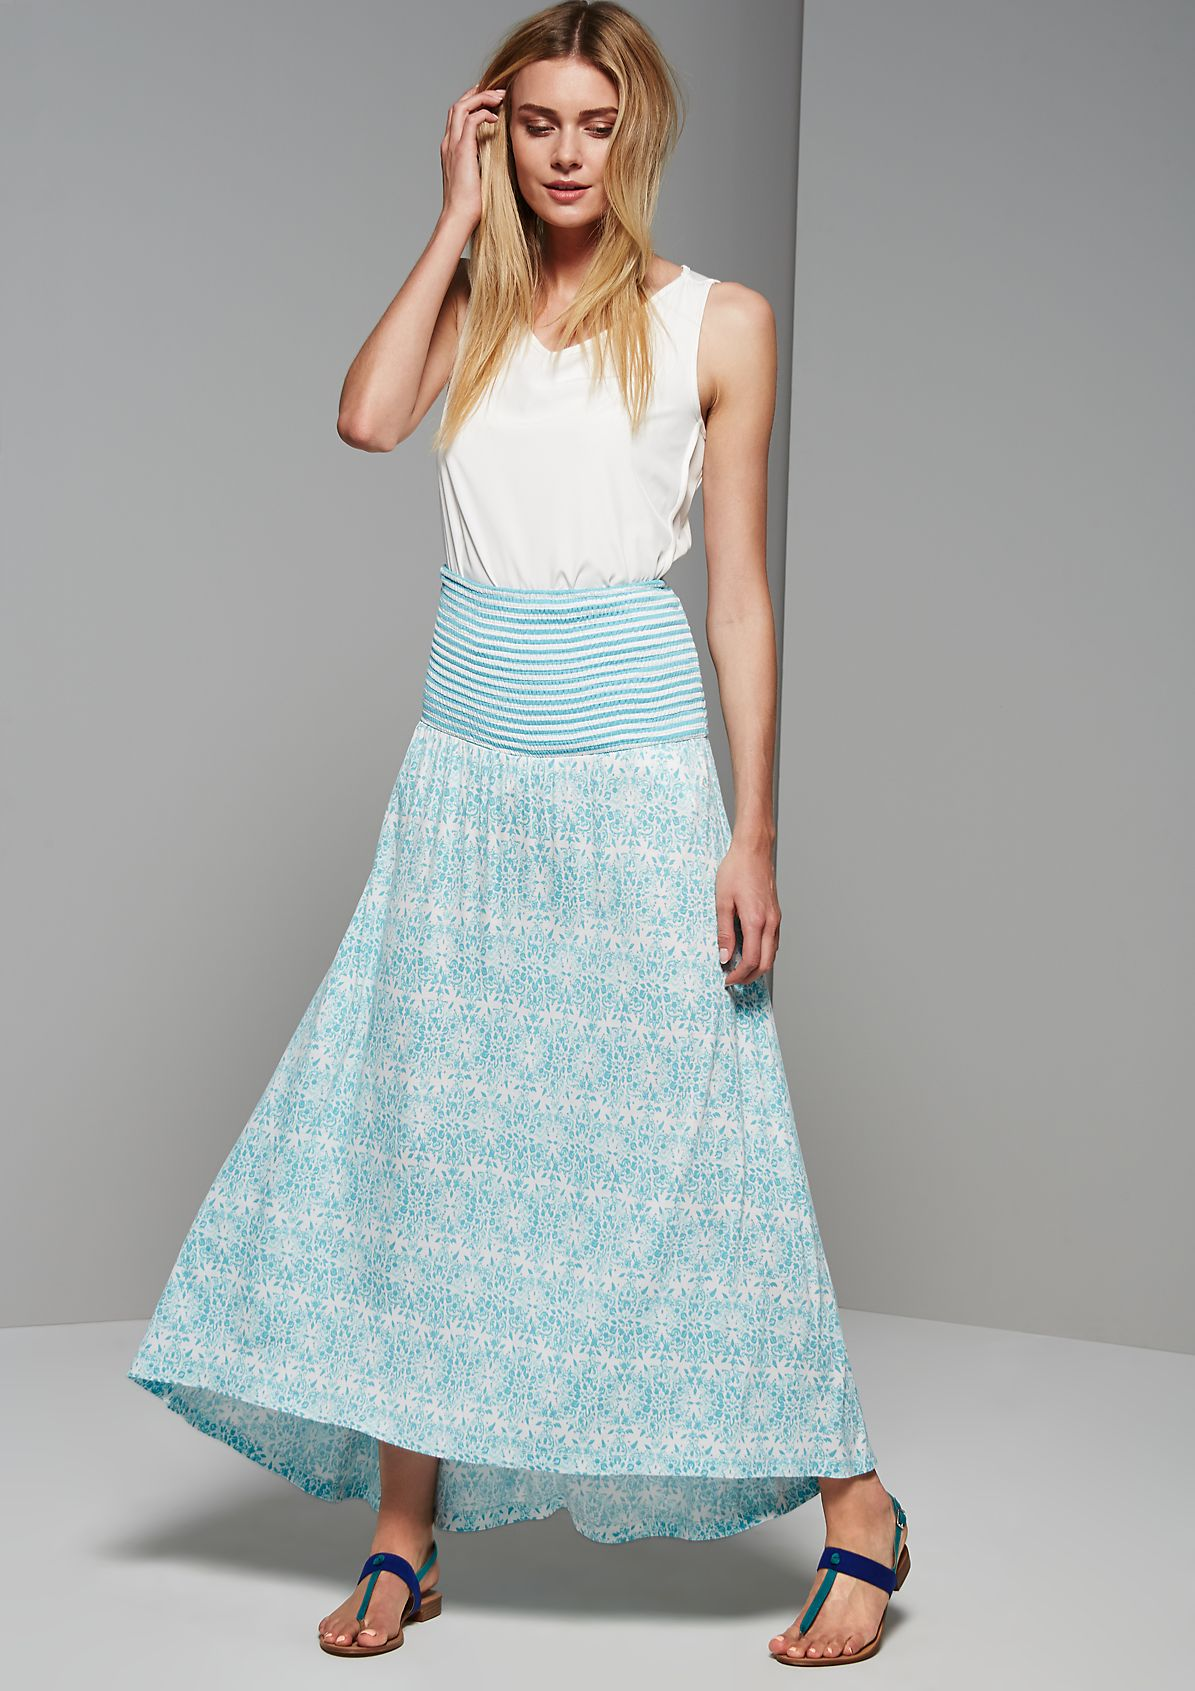 Summer dress with a beautiful floral pattern from s.Oliver